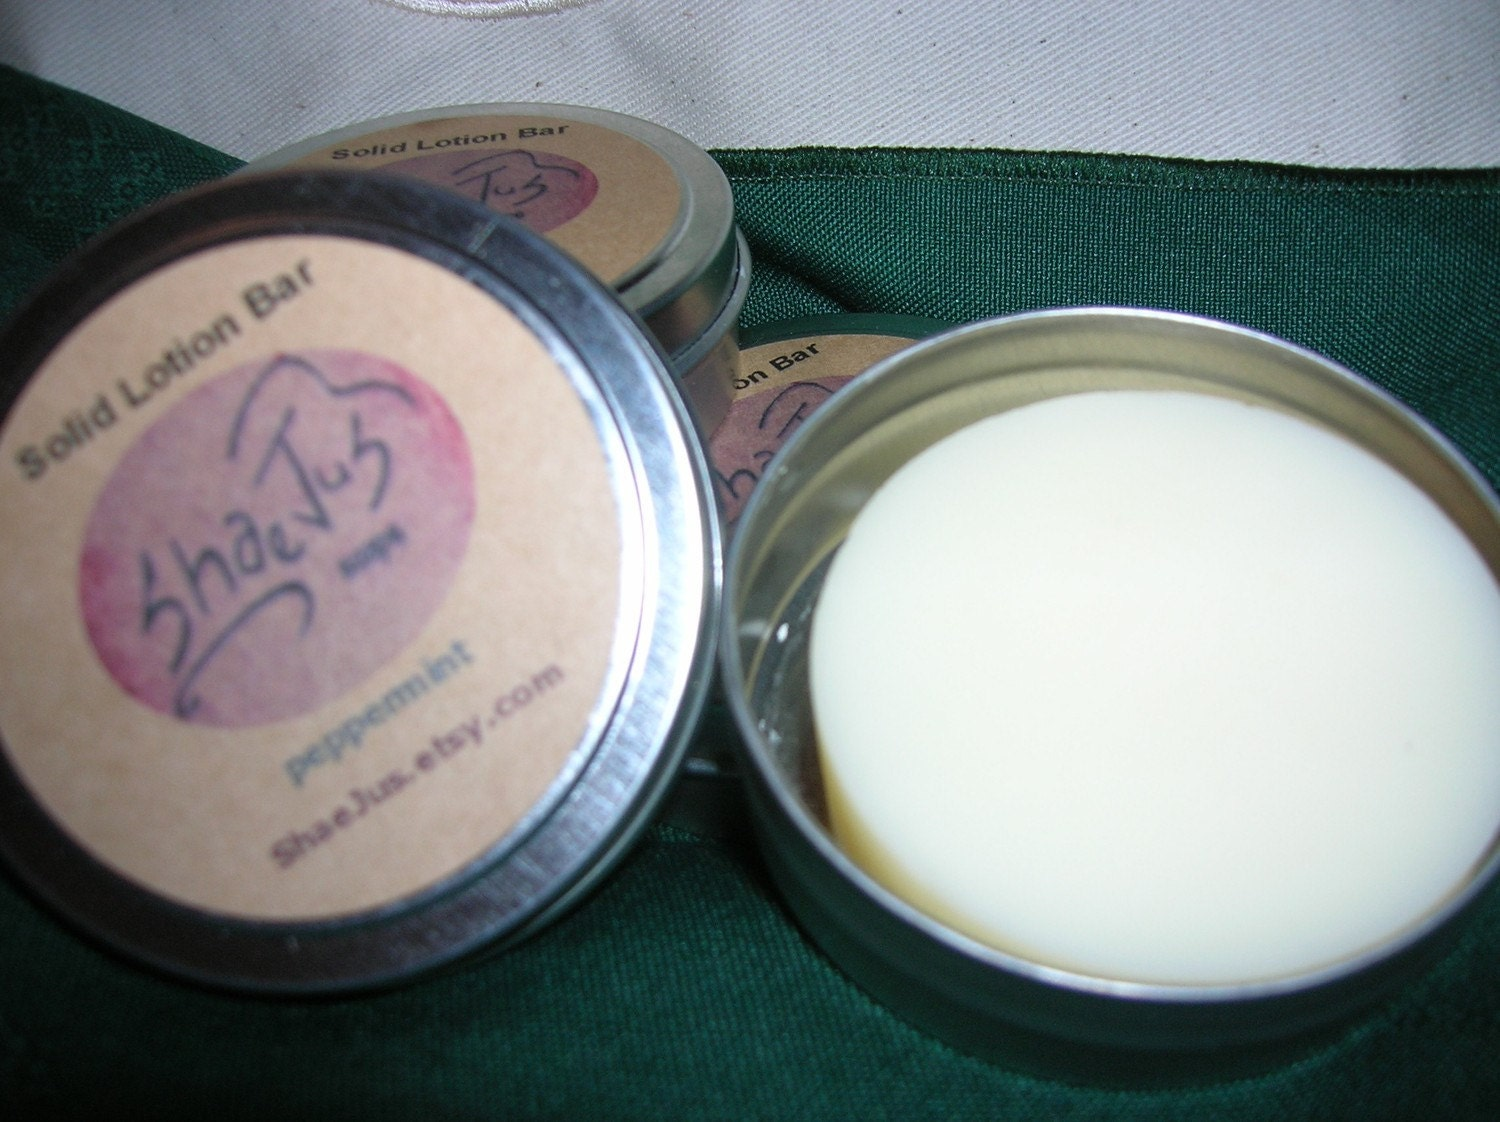 Vanilla Lotion Bar JAPAN RELIEF